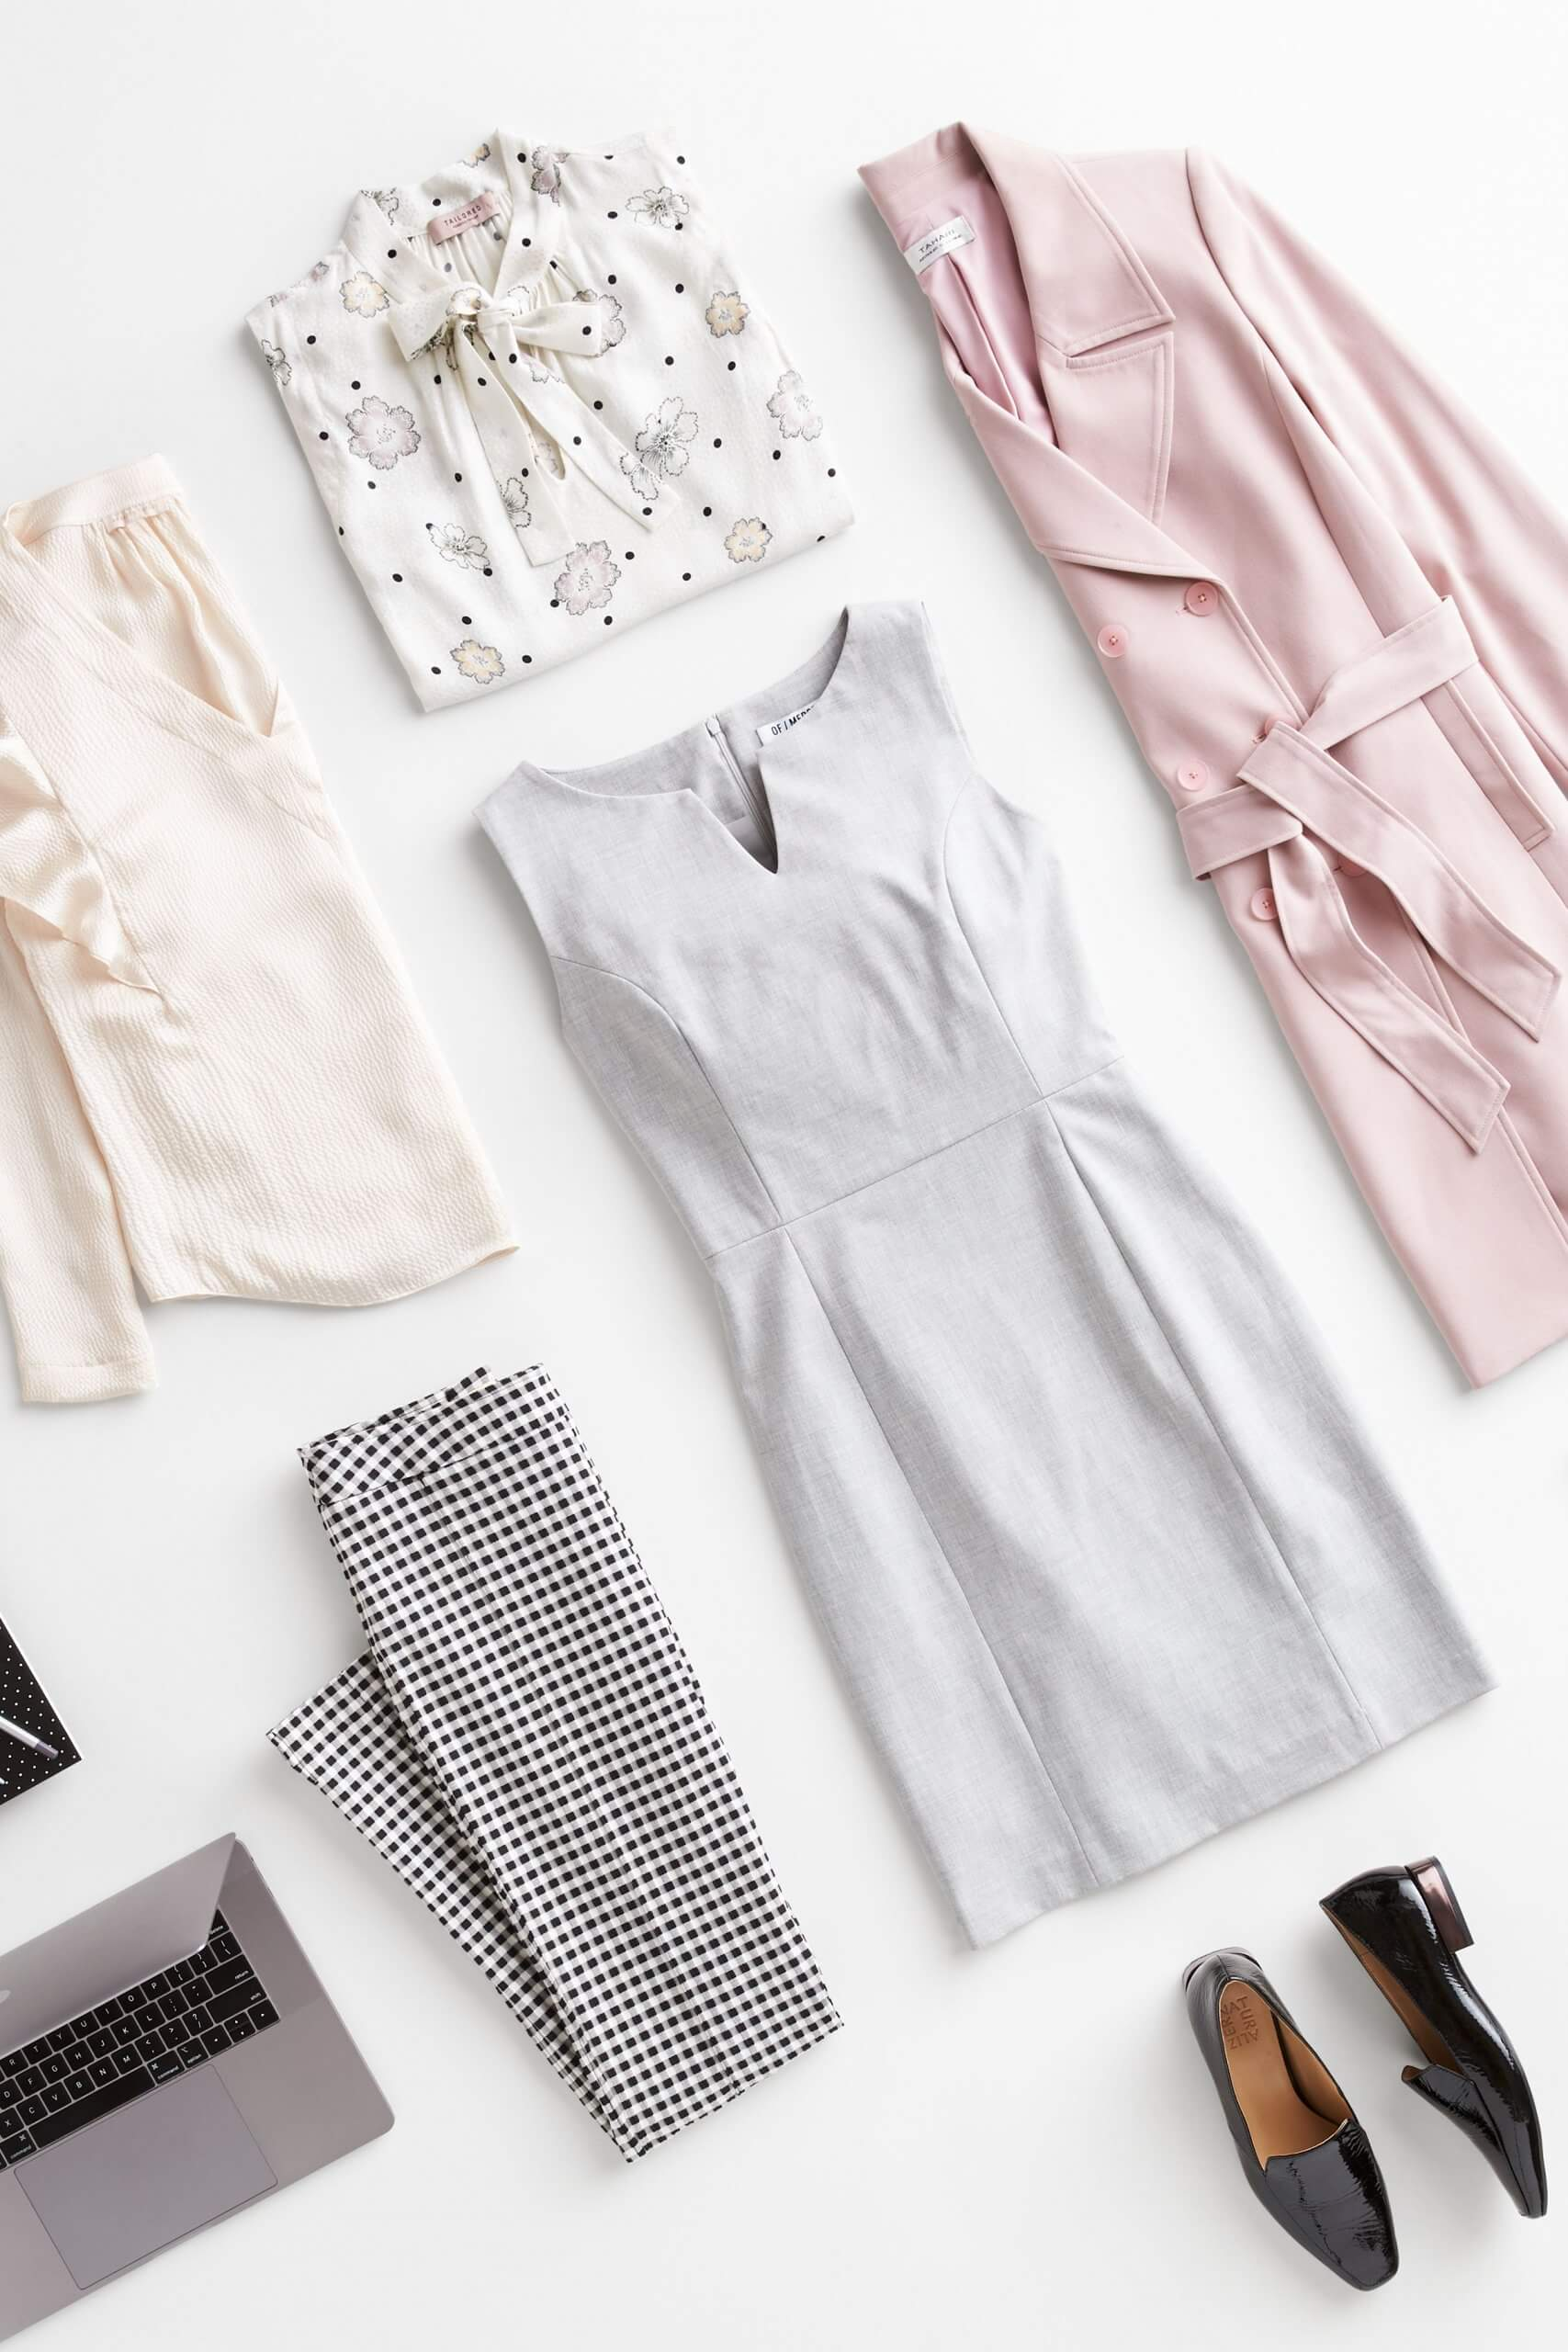 Stitch Fix Women's outfit laydown featuring pink trench jacket, white patterned tie-neck blouse, cream blouse, black and white checkered pants, grey sheath dress and black loafers.